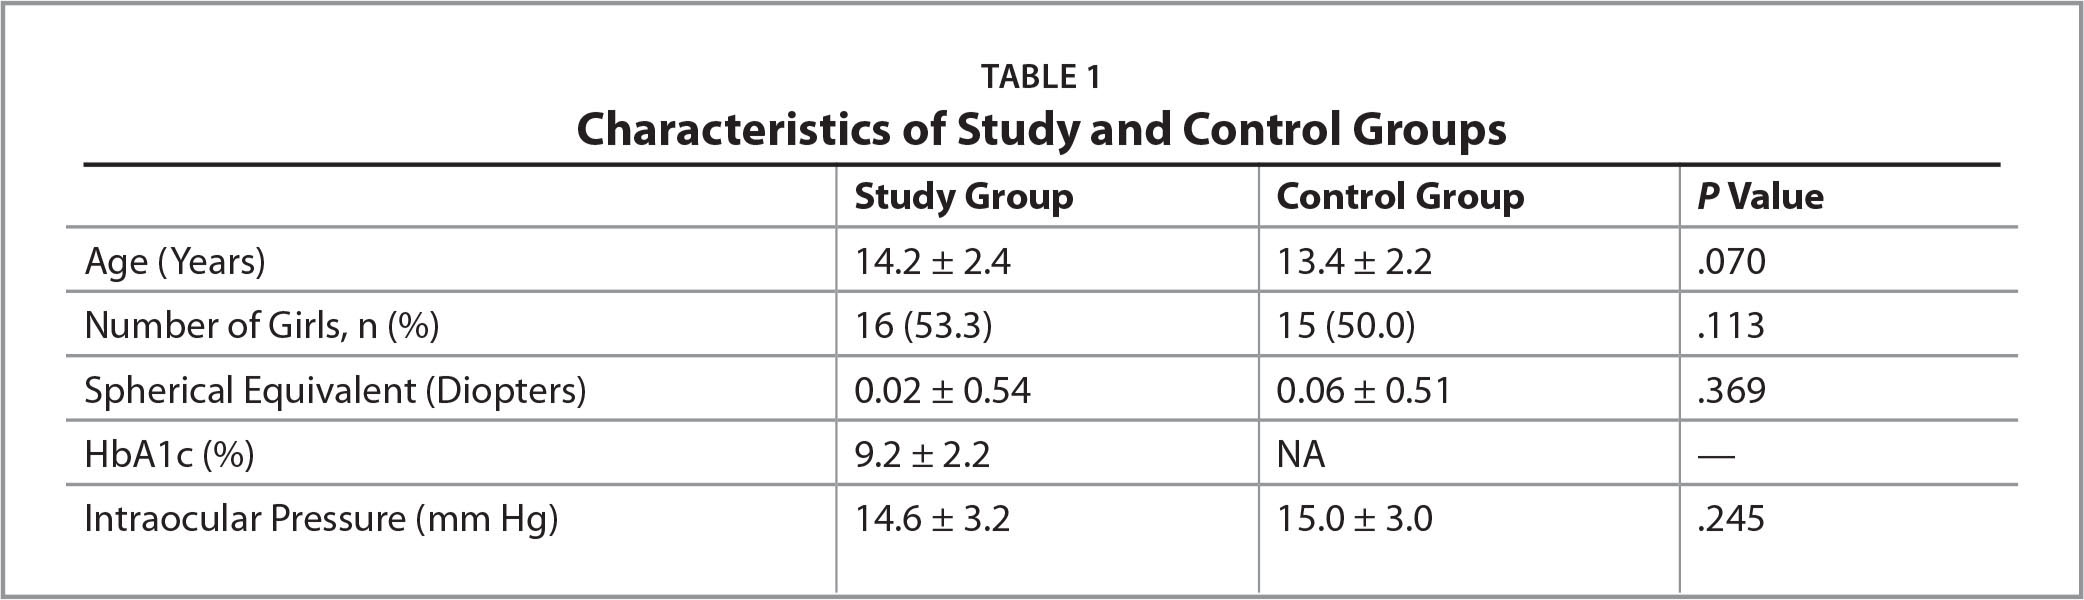 Characteristics of Study and Control Groups